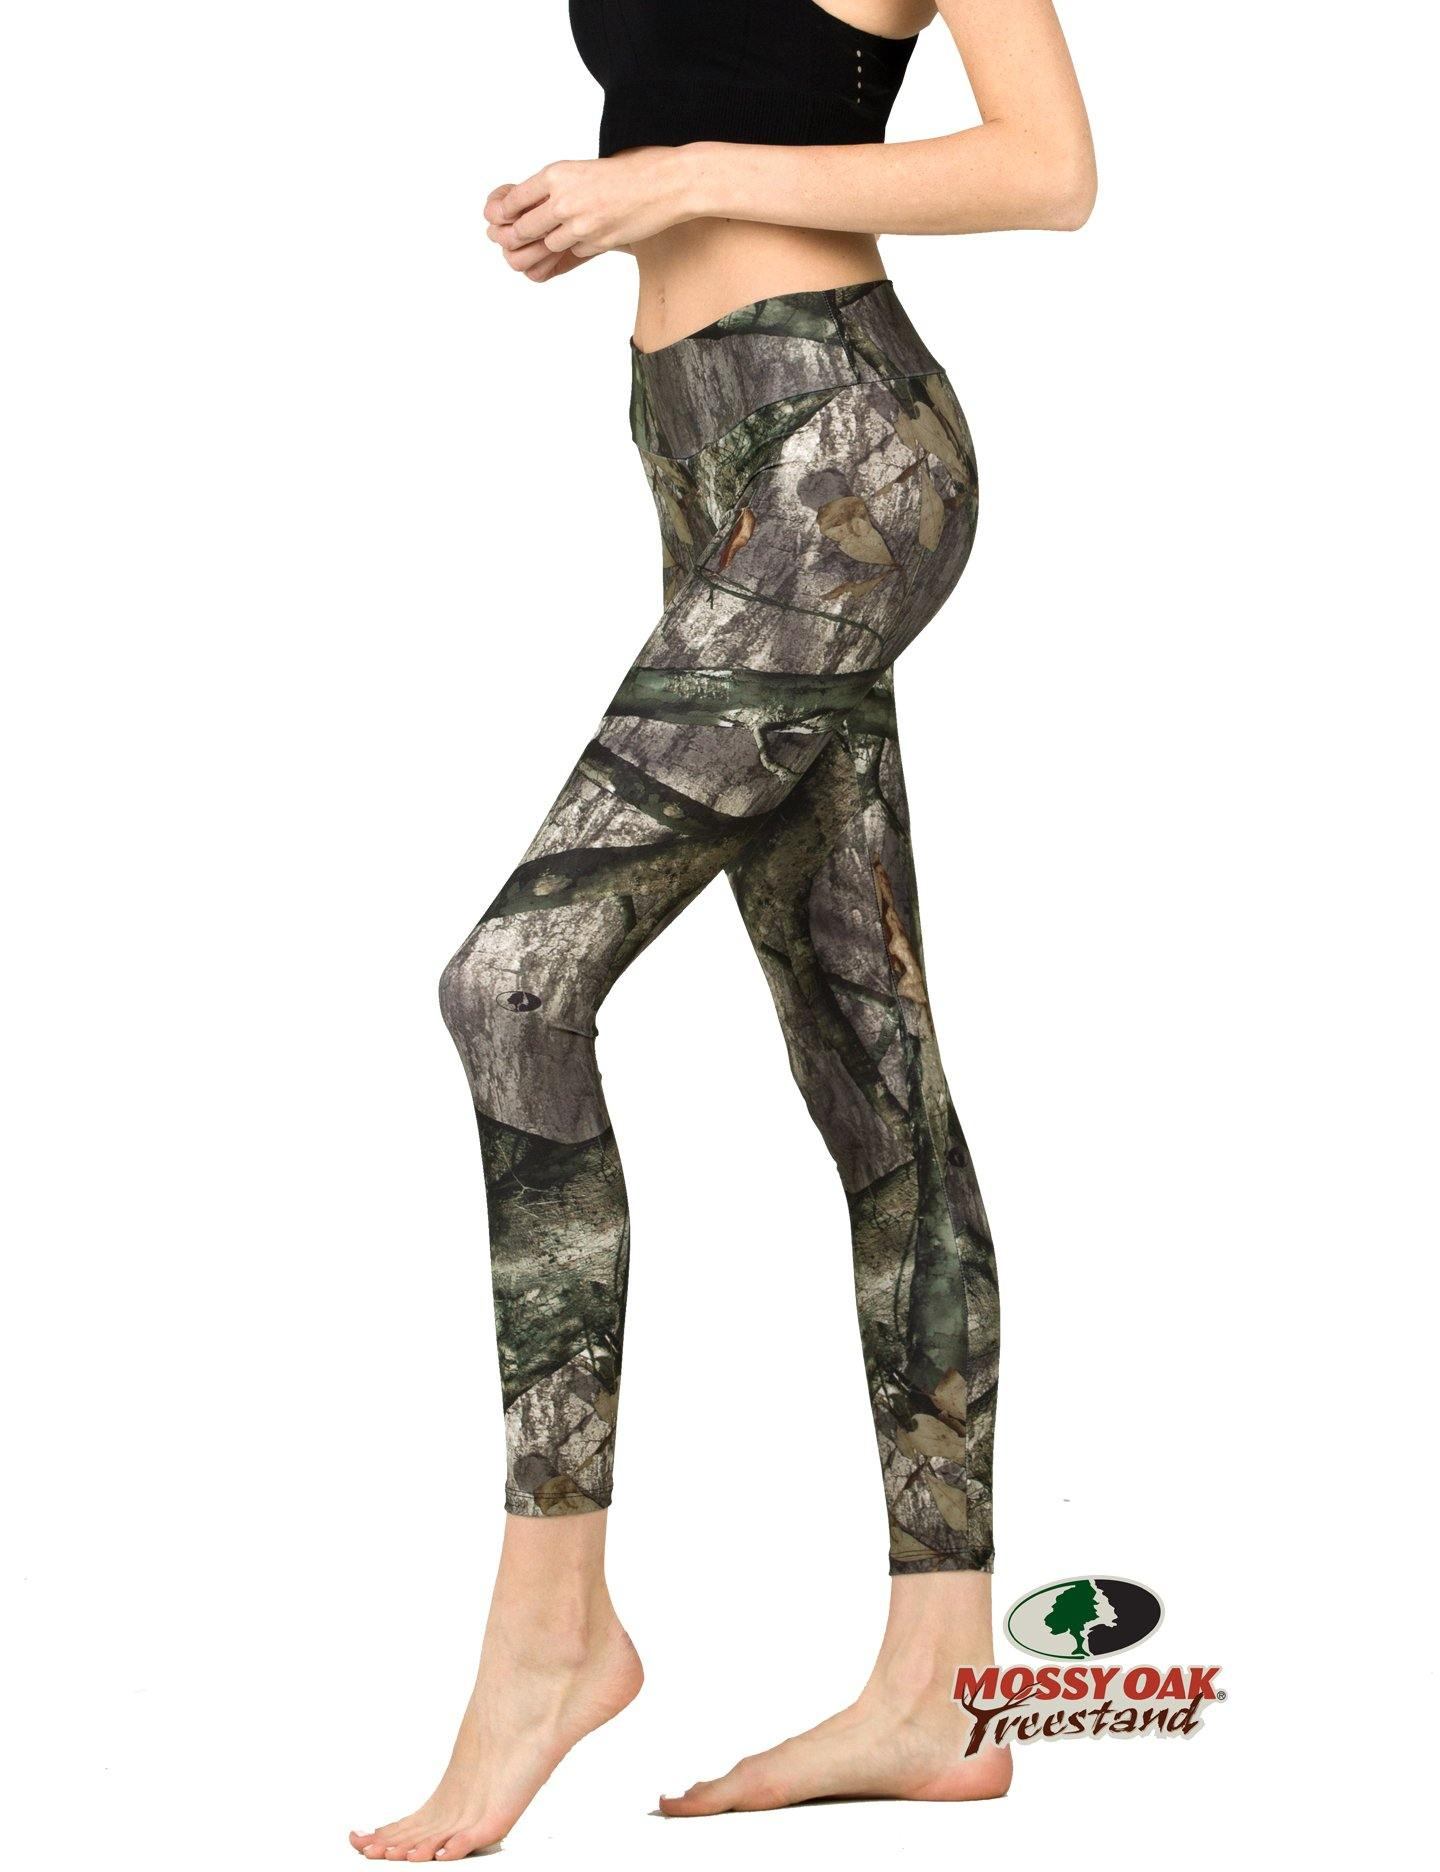 Apsara Leggings Low Waist Full Length, Mossy Oak Treestand